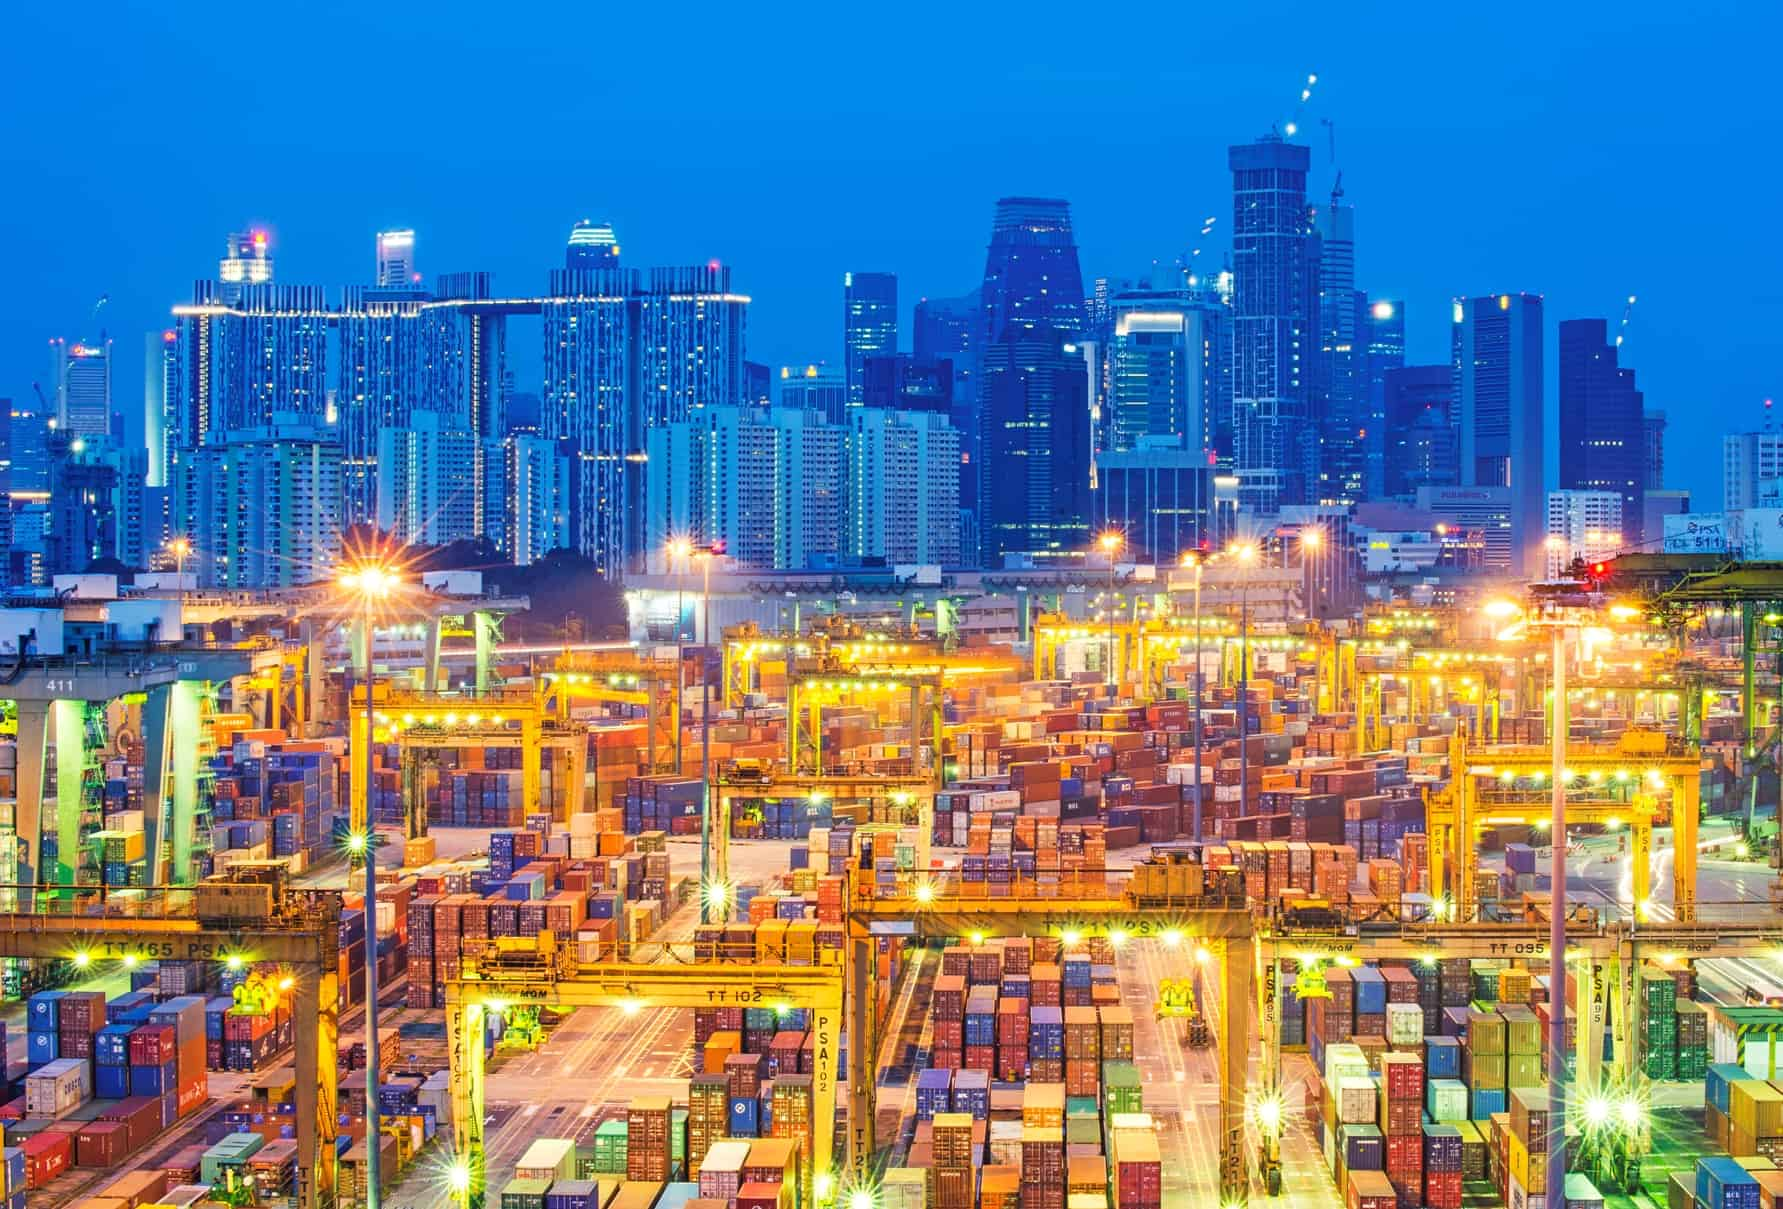 French Fall Wallpaper Psa Singapore S Container Volumes Down 9 Container